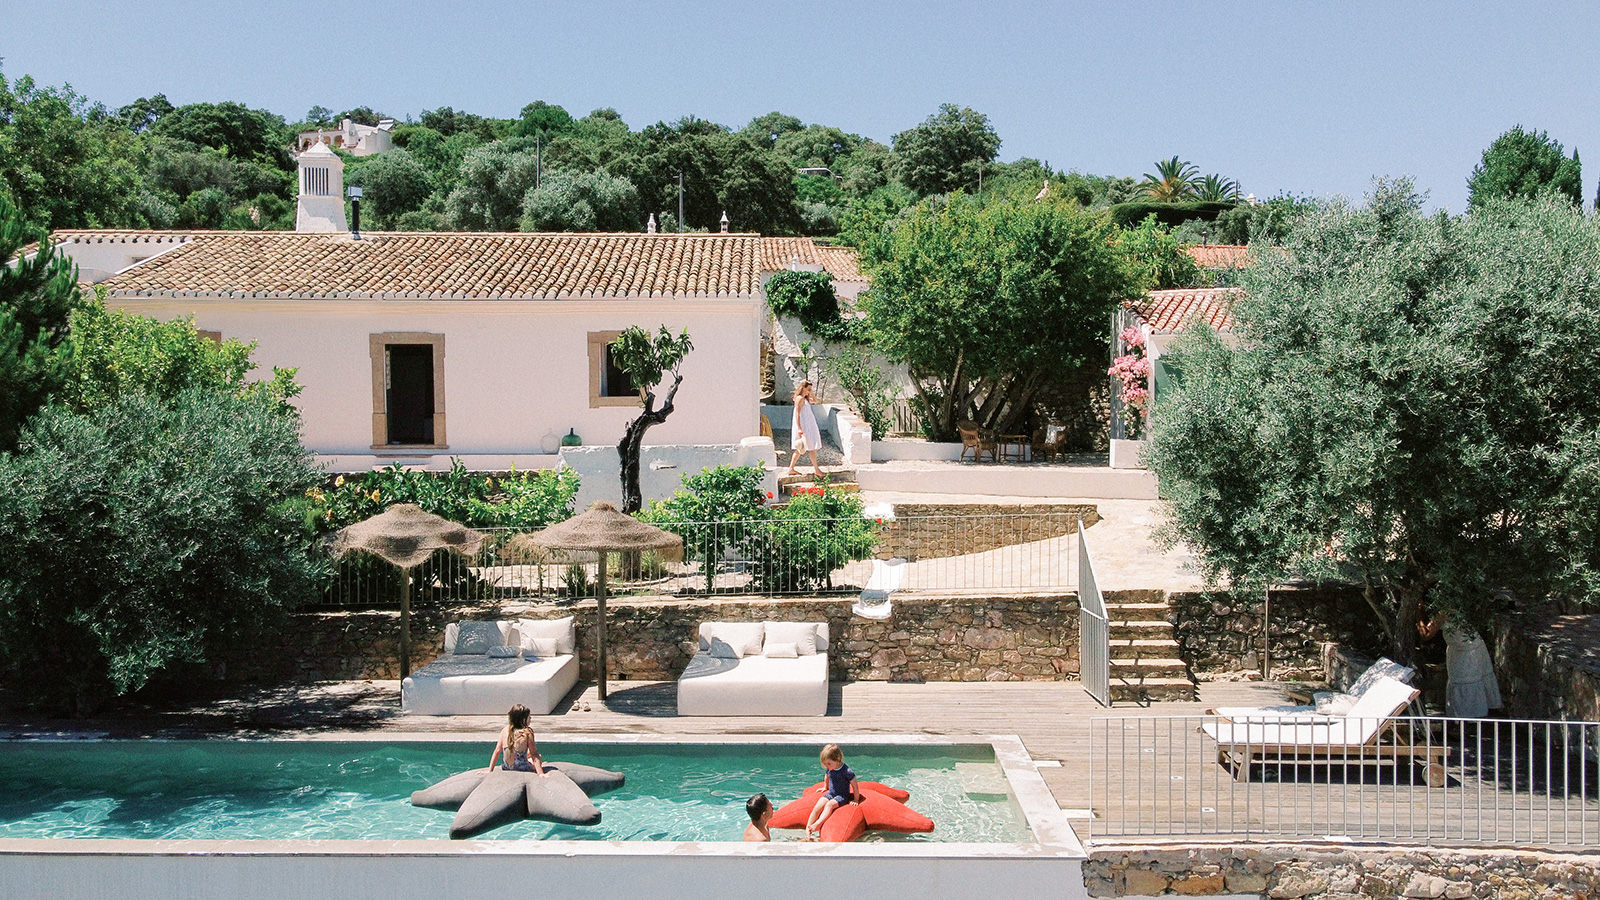 Casa 1876 boutique hotel and holiday villa in Portugal